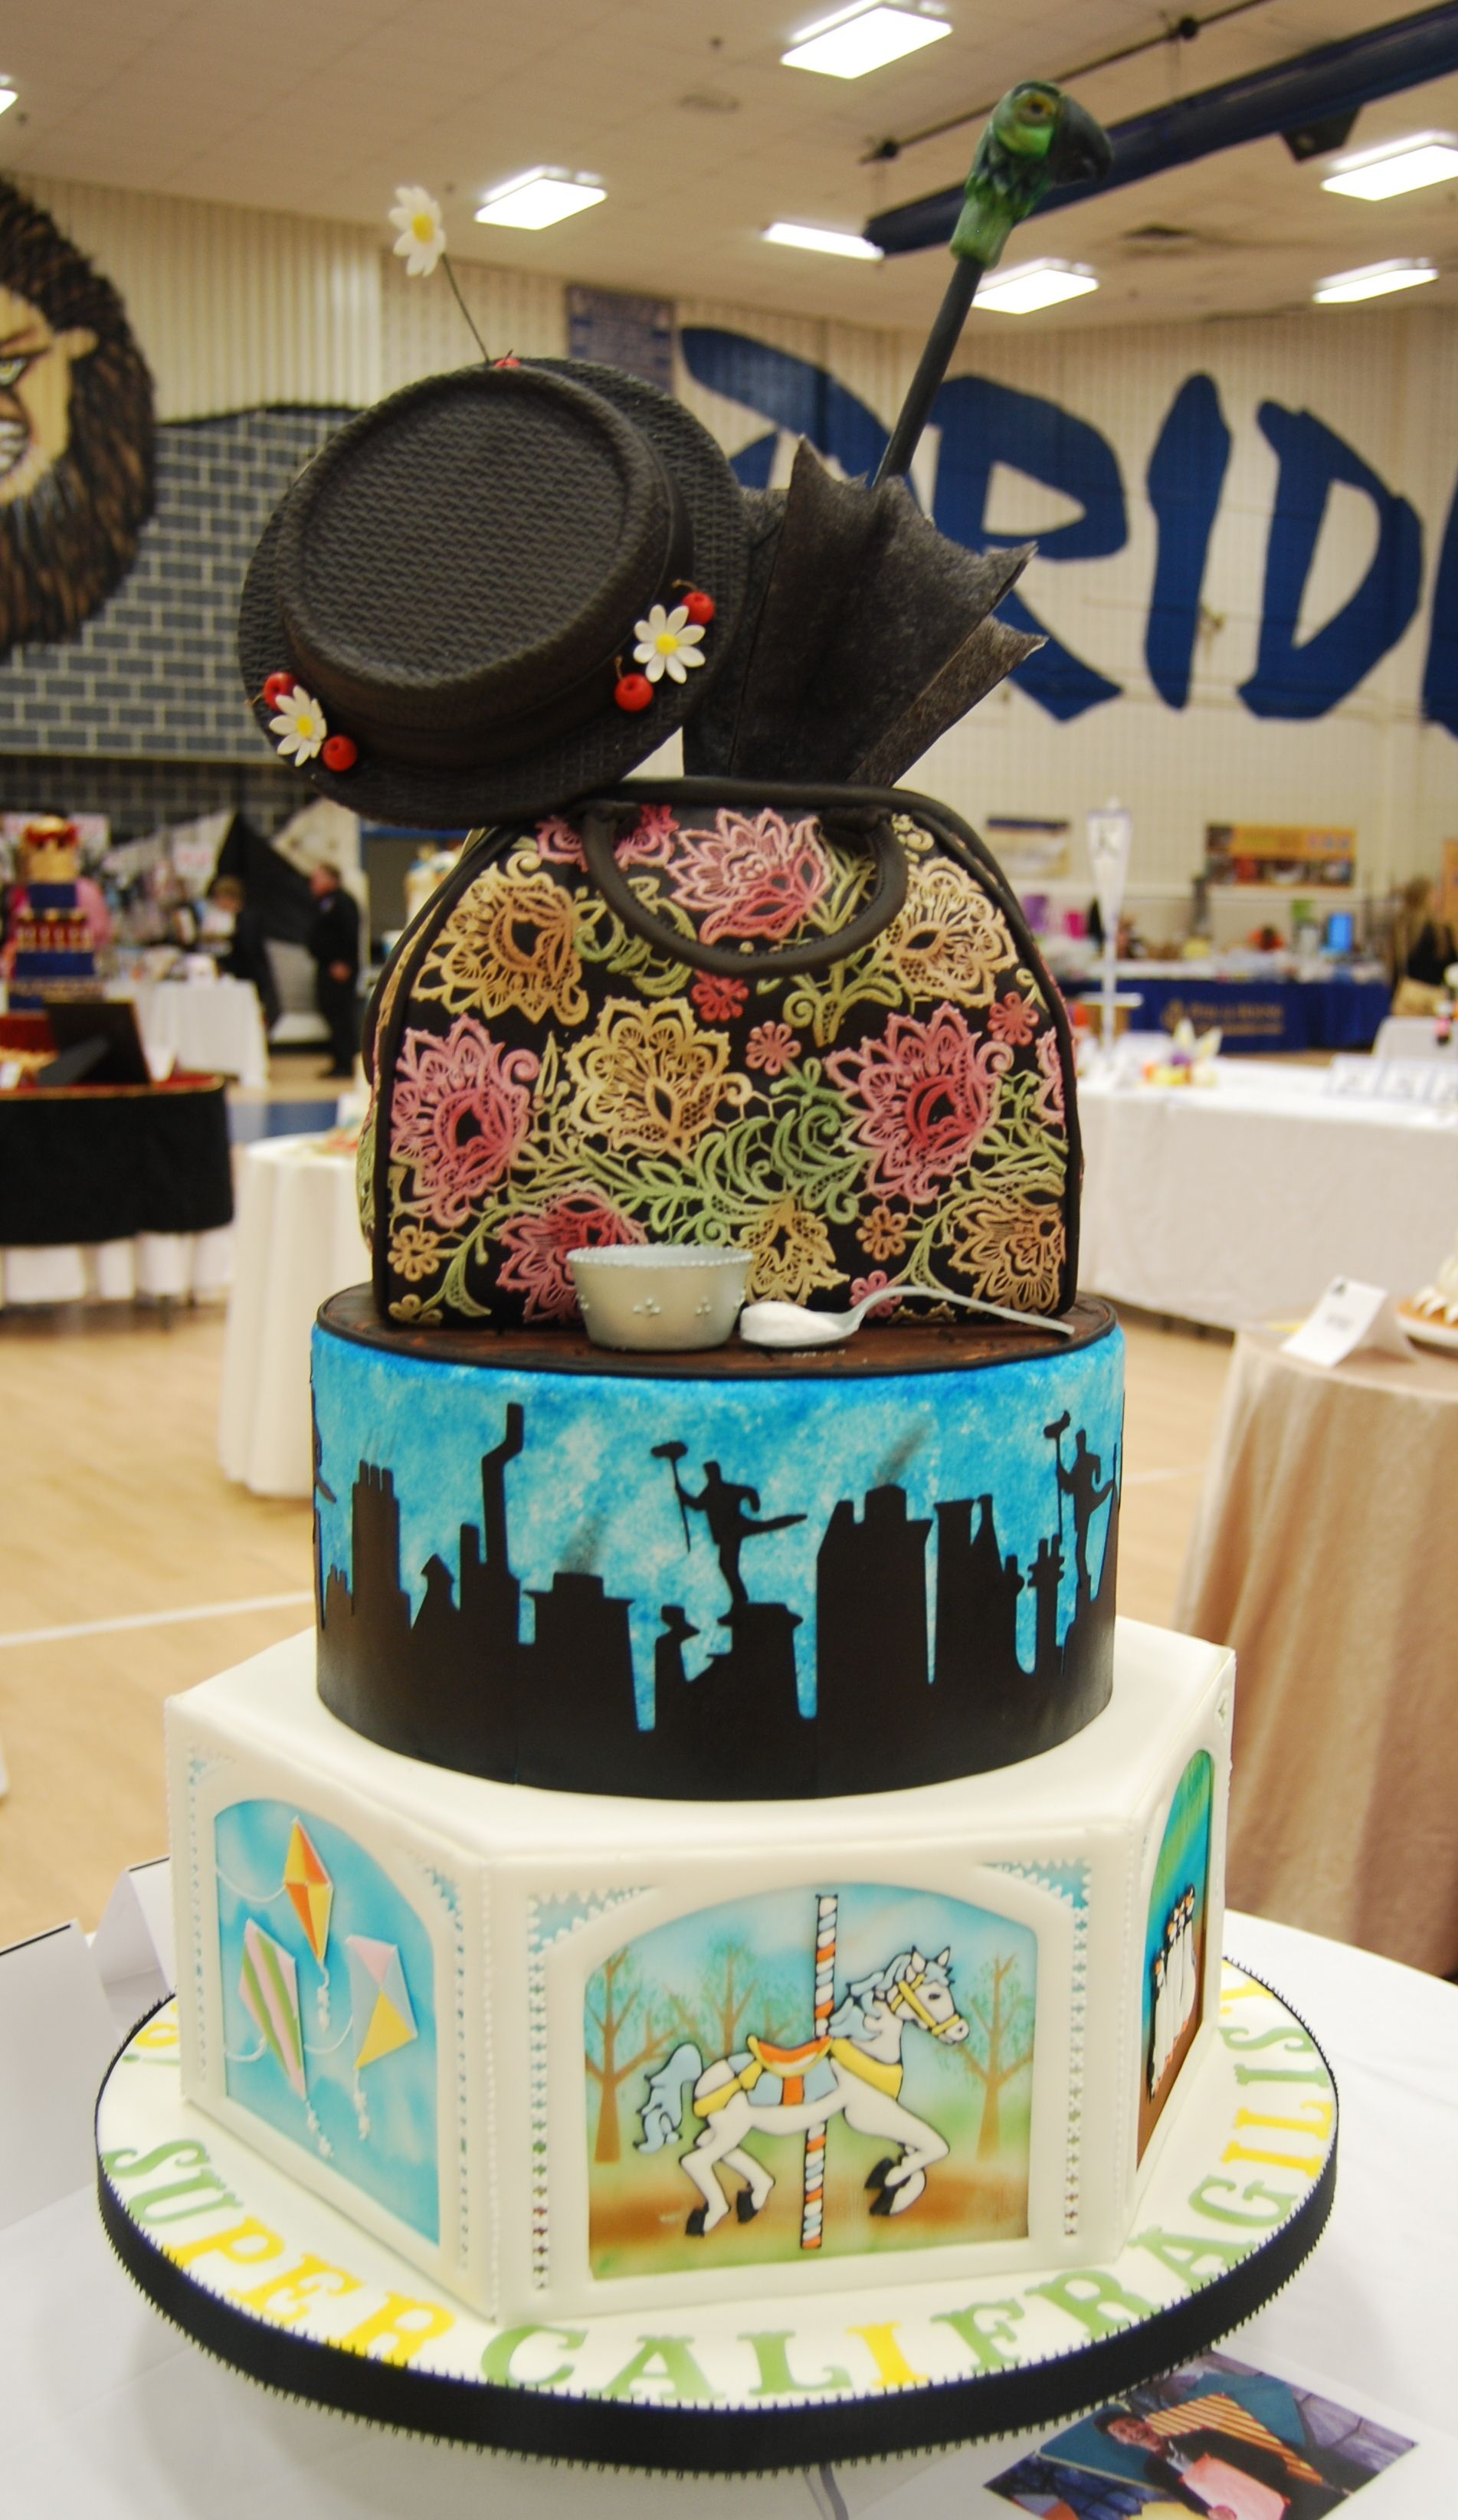 Mary Poppins Cake By Barb Evans Placed In The Wedding Cake Division At Ncacs